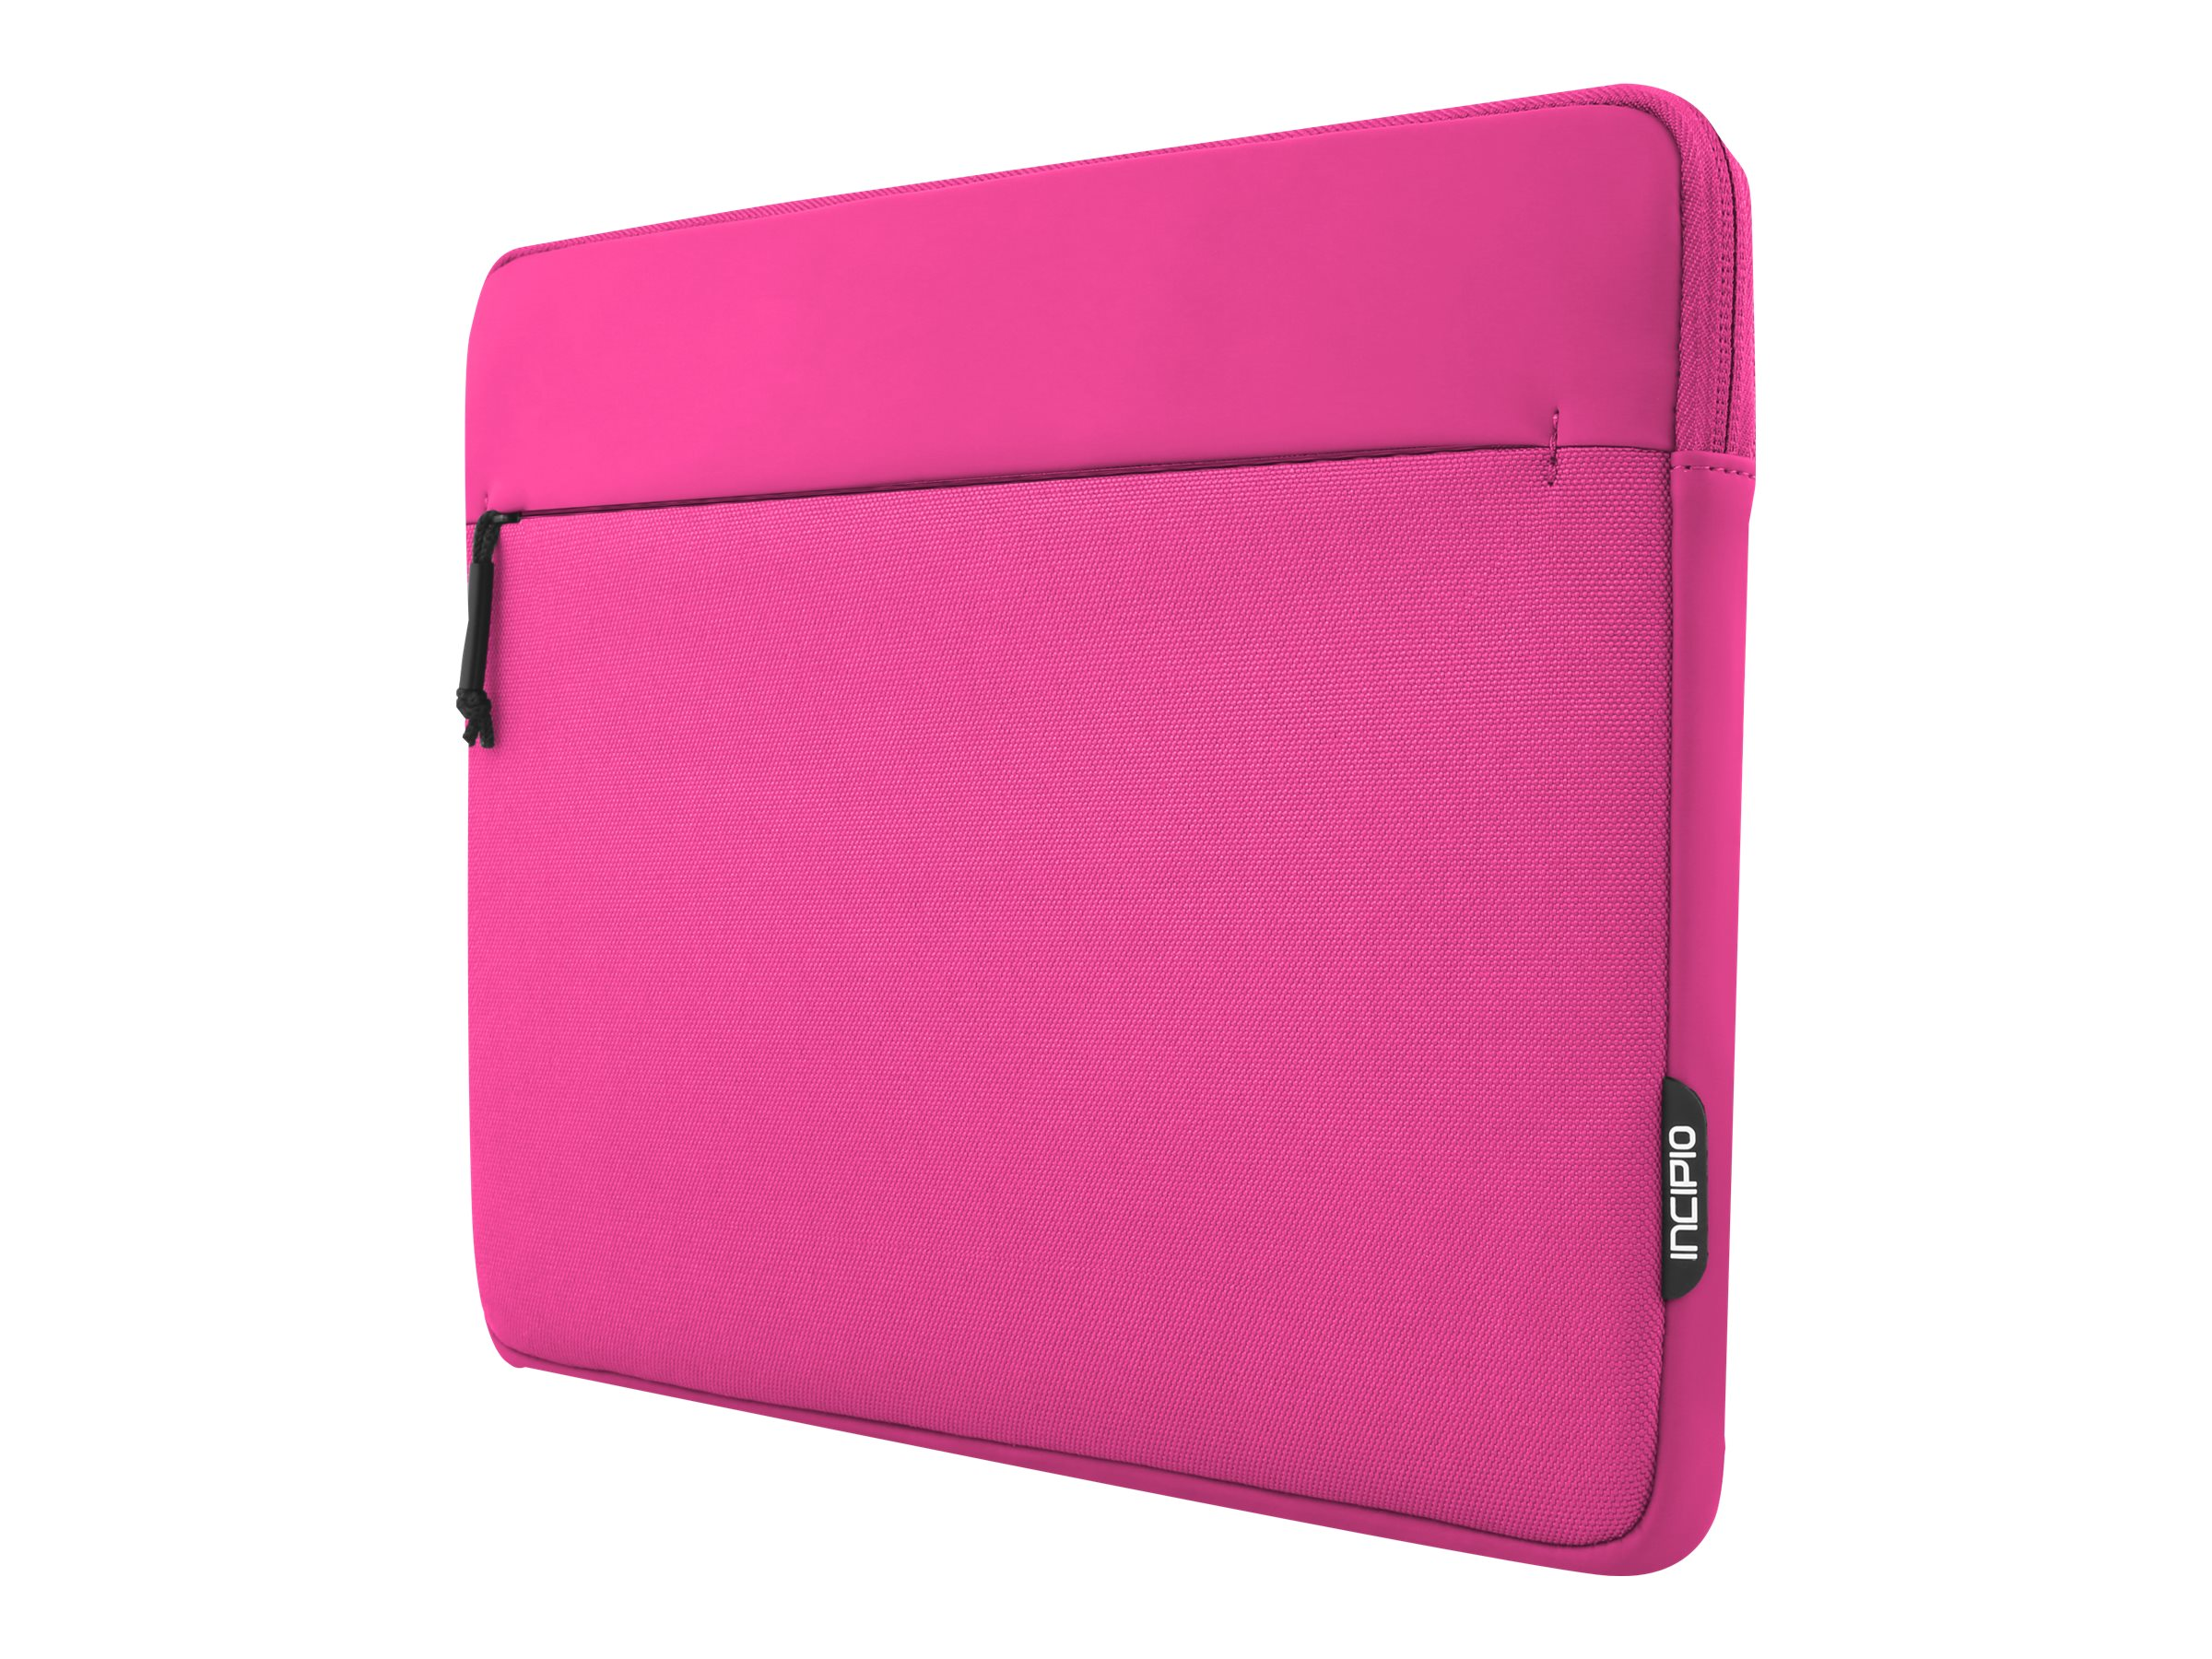 Incipio Truman Protective Padded Sleeve for iPad Pro 12.9, Pink, IPD-292-PNK